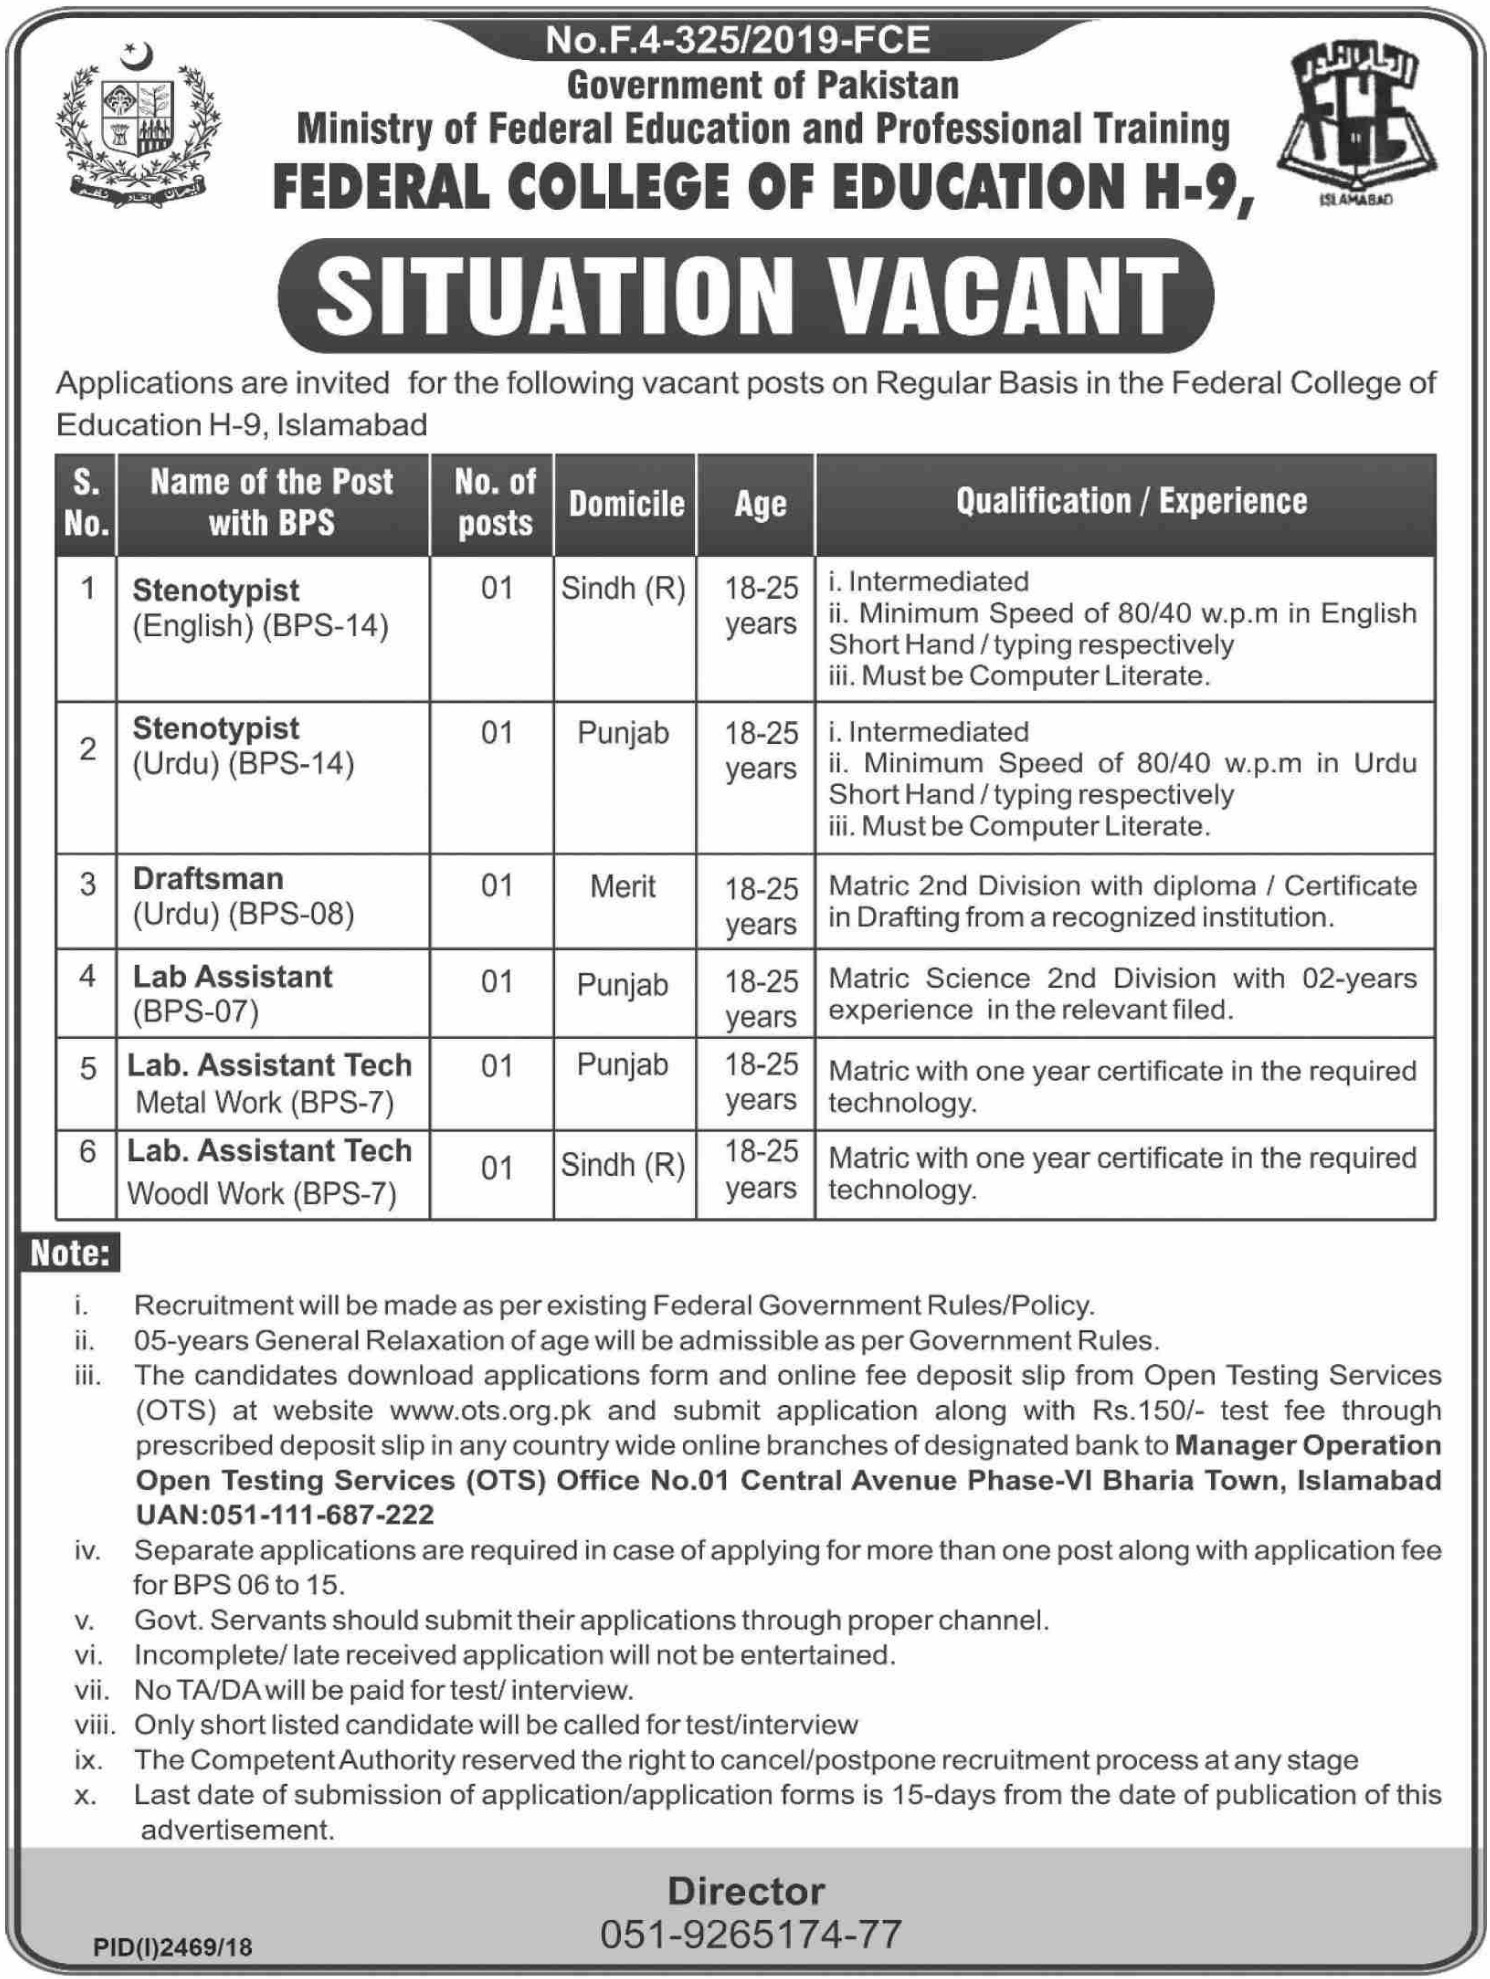 Federal College of Education Islamabad Jobs 2019 Apply through OTS